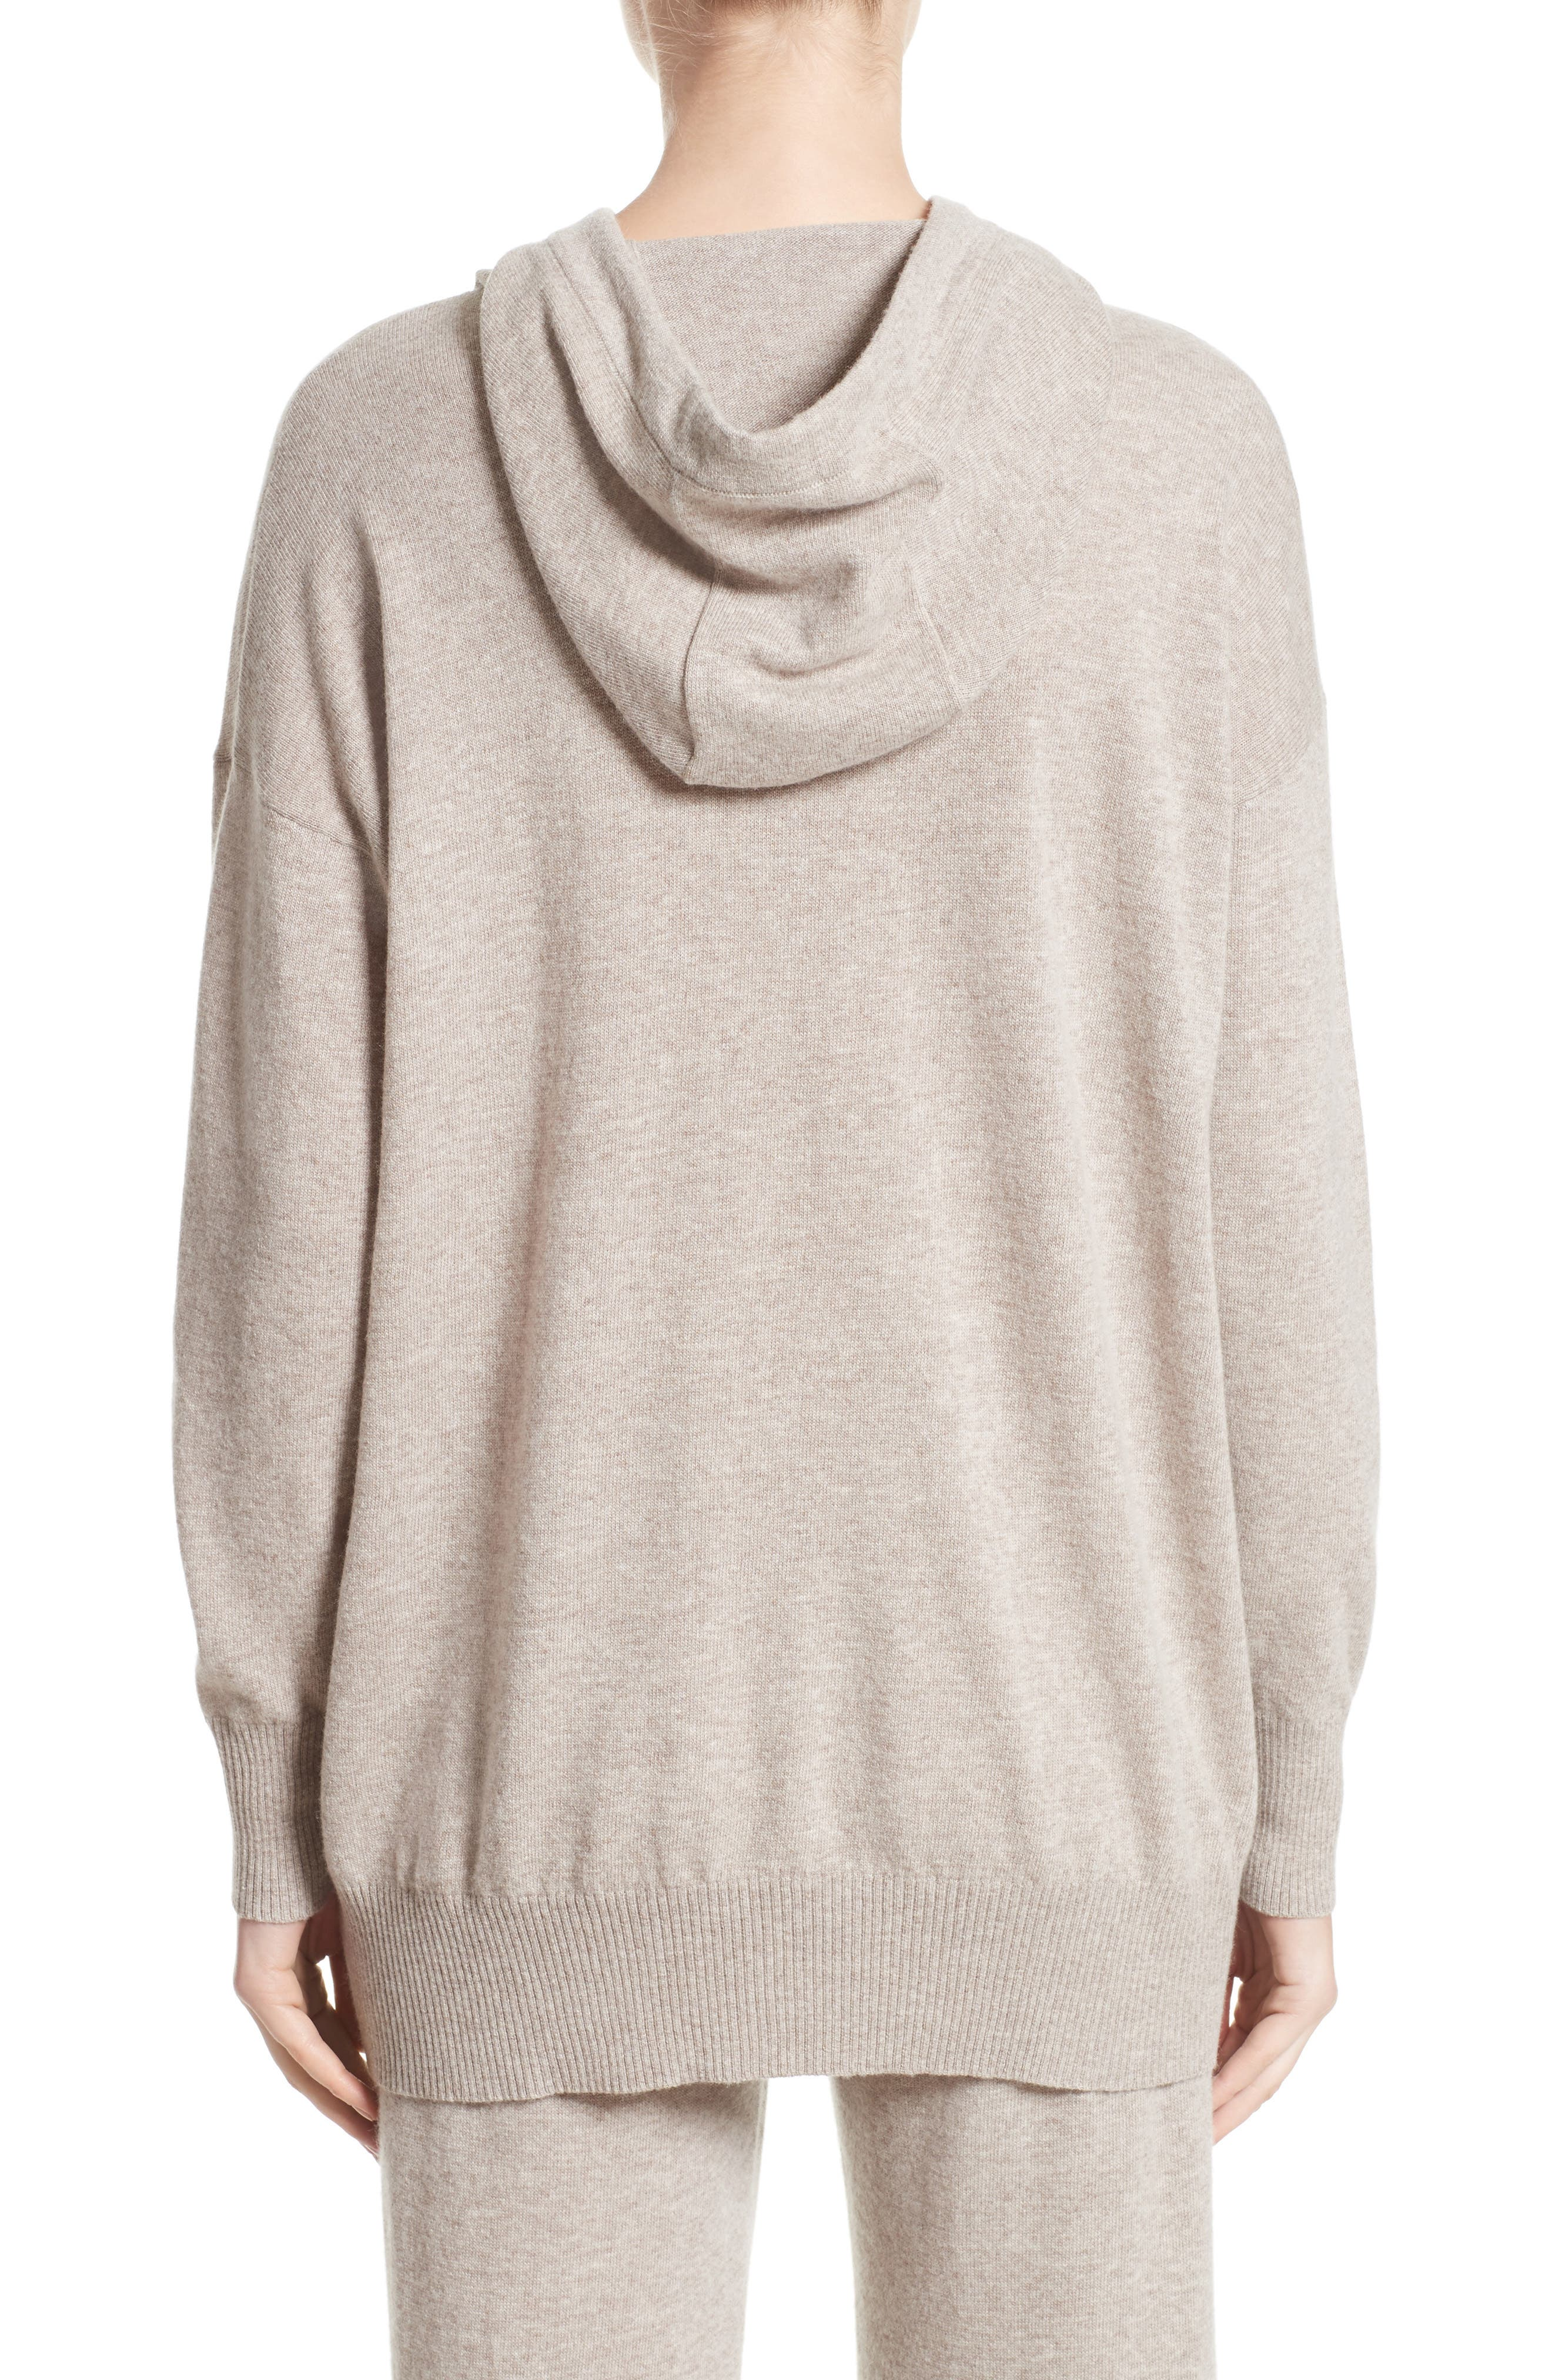 Nitra Wool & Cashmere Hooded Sweater,                             Alternate thumbnail 2, color,